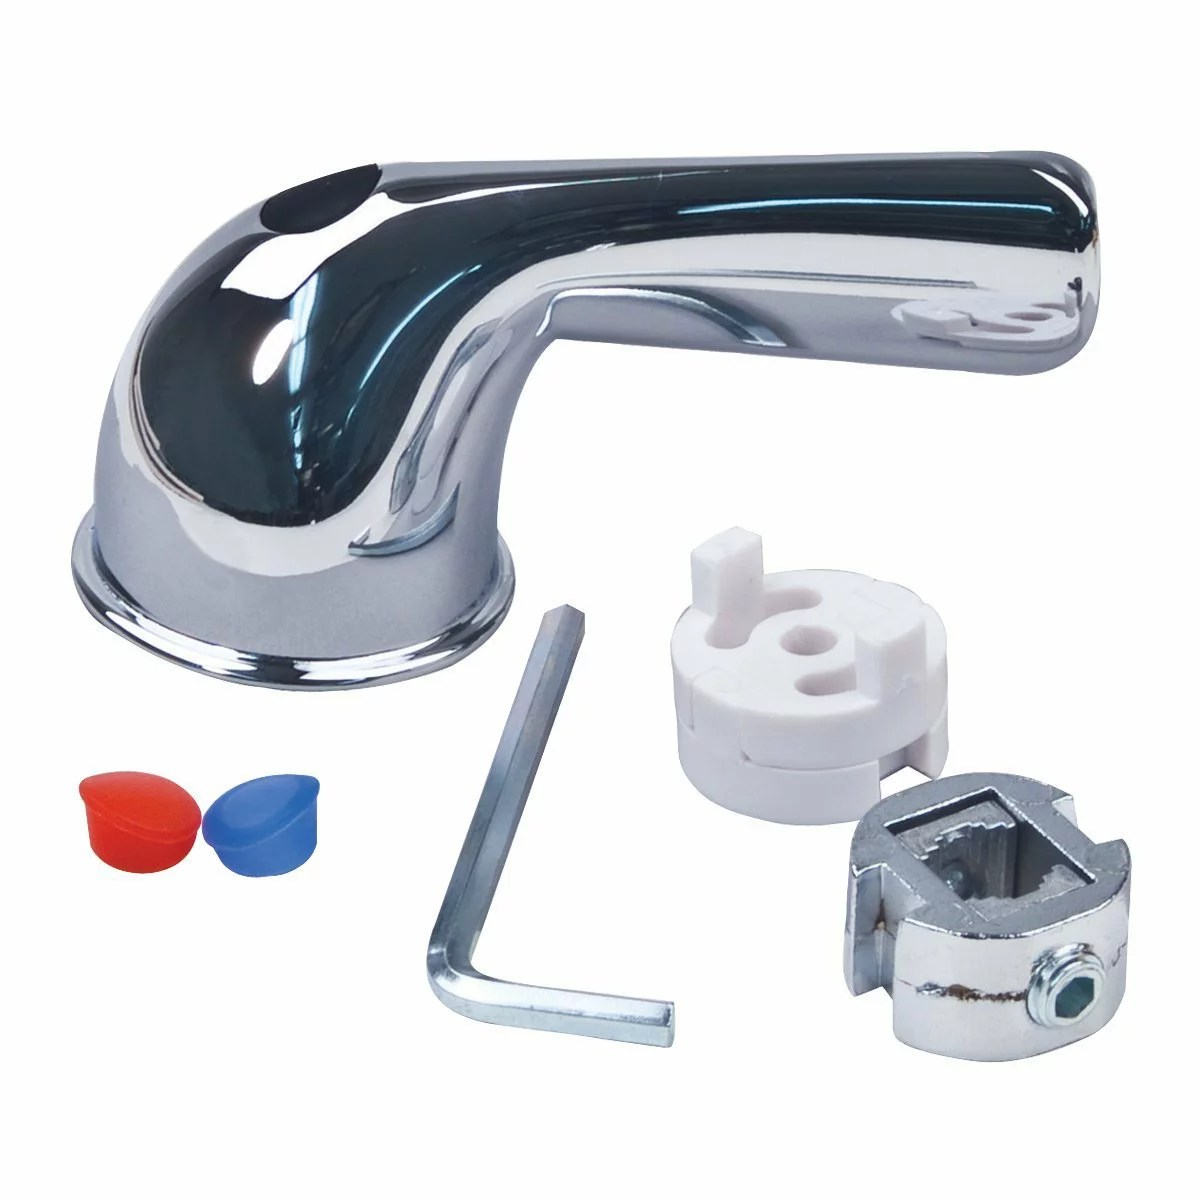 Brasscraft Sh5815 Universal Fit Tub And Shower Lever Faucet Handle Chrome